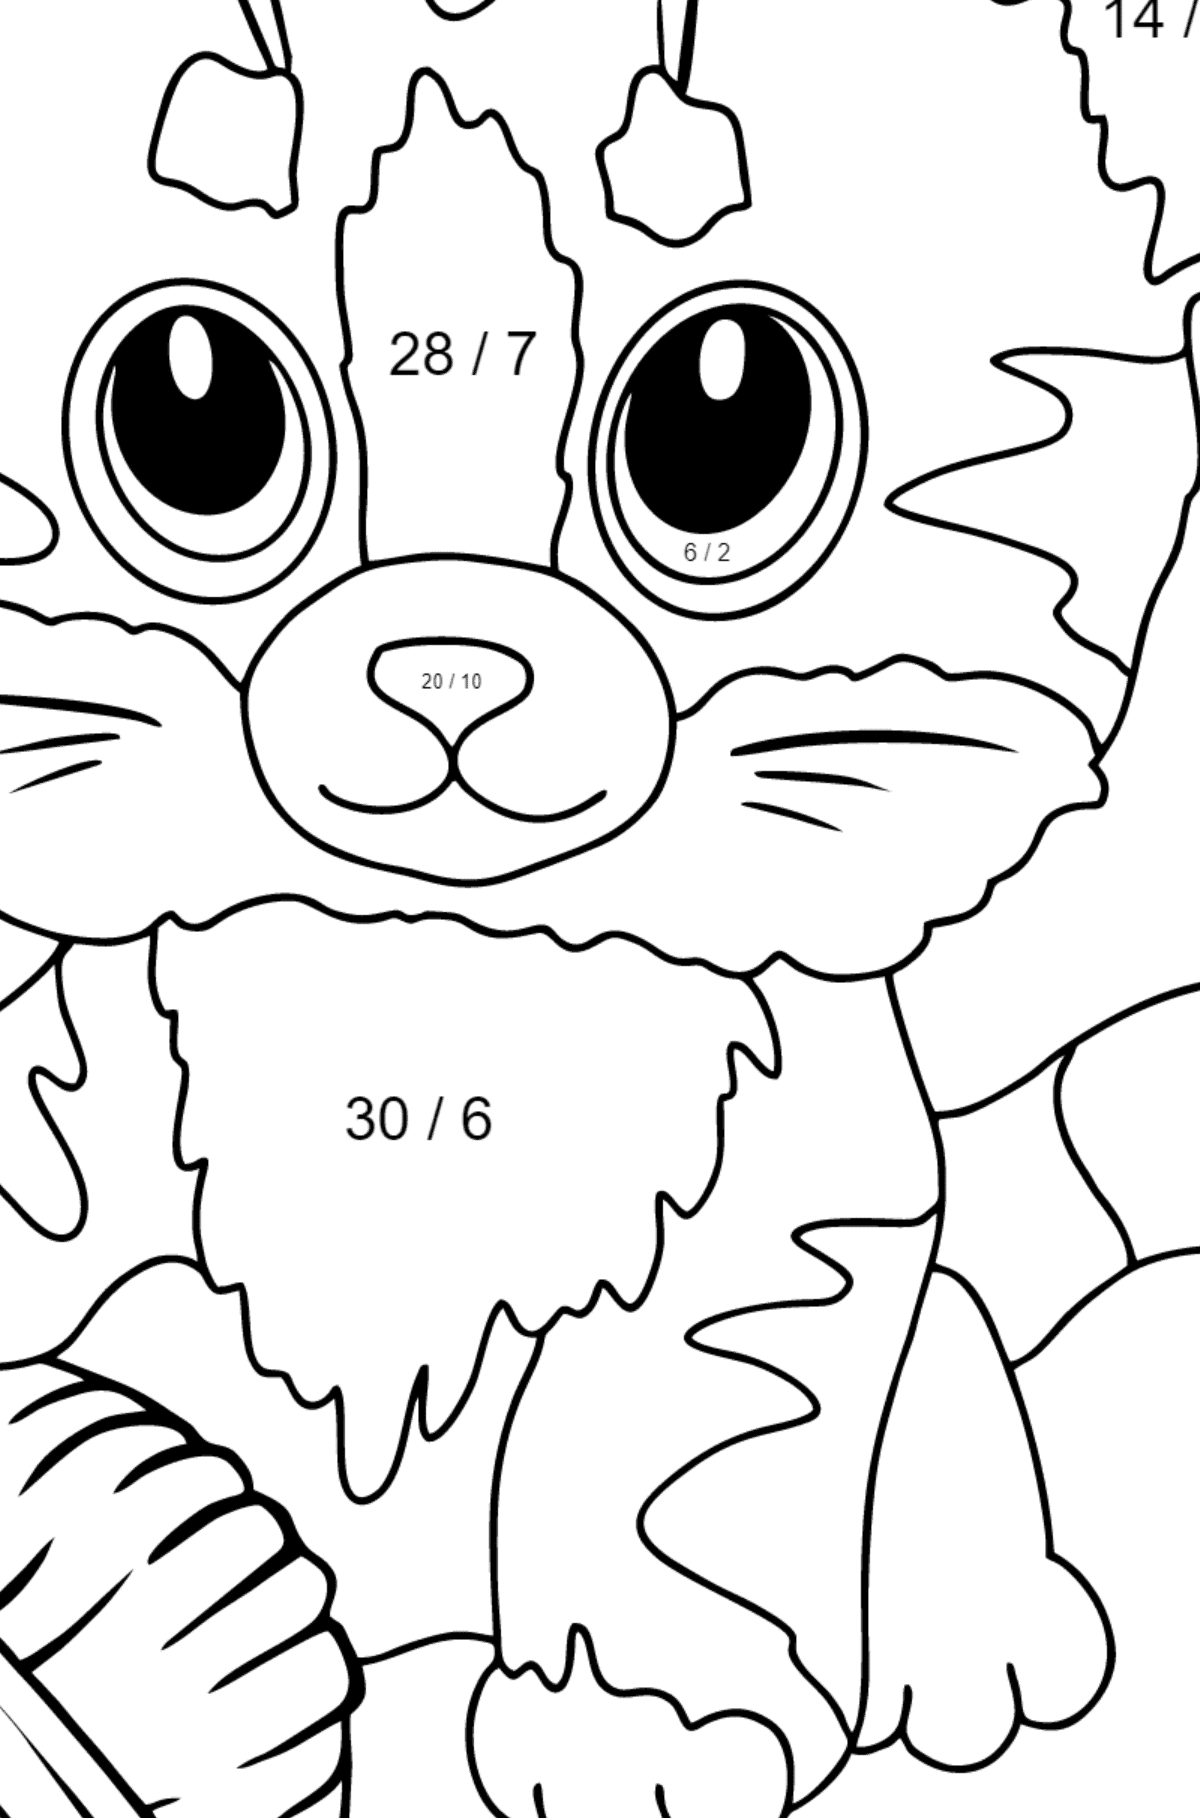 Coloring Page - a Kitten has Caught a Ball of Yarn - Math Coloring - Division for Children